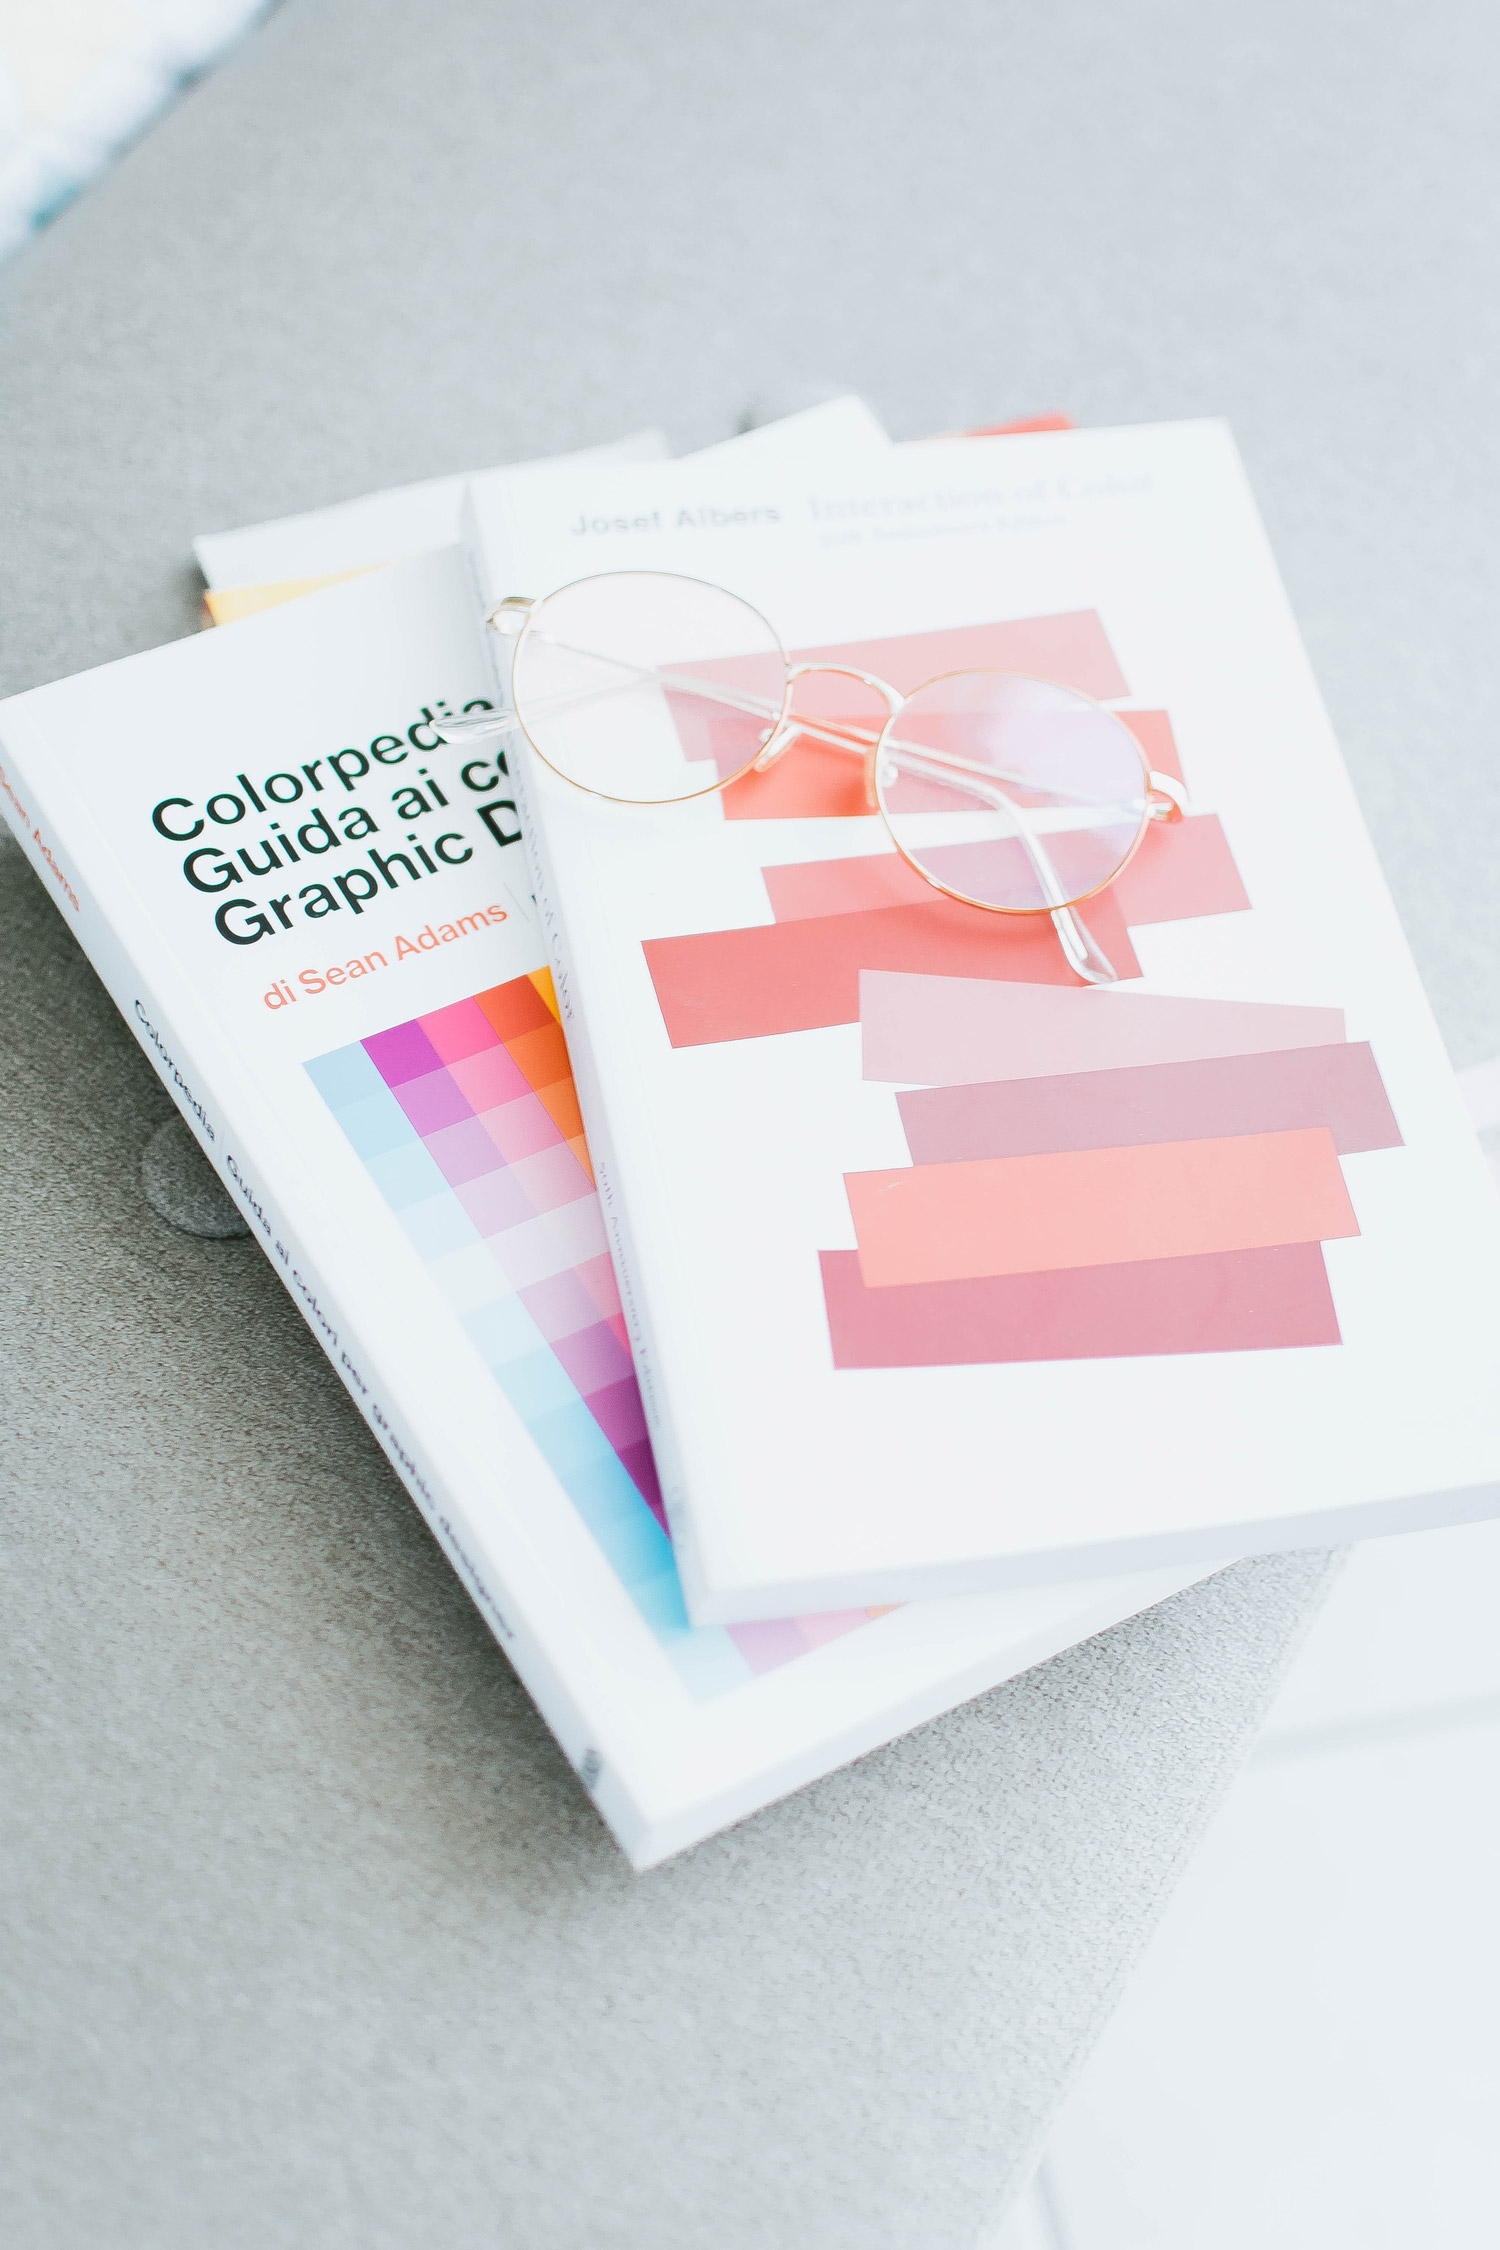 Books to understand the importance of color psychology in branding for small businesses